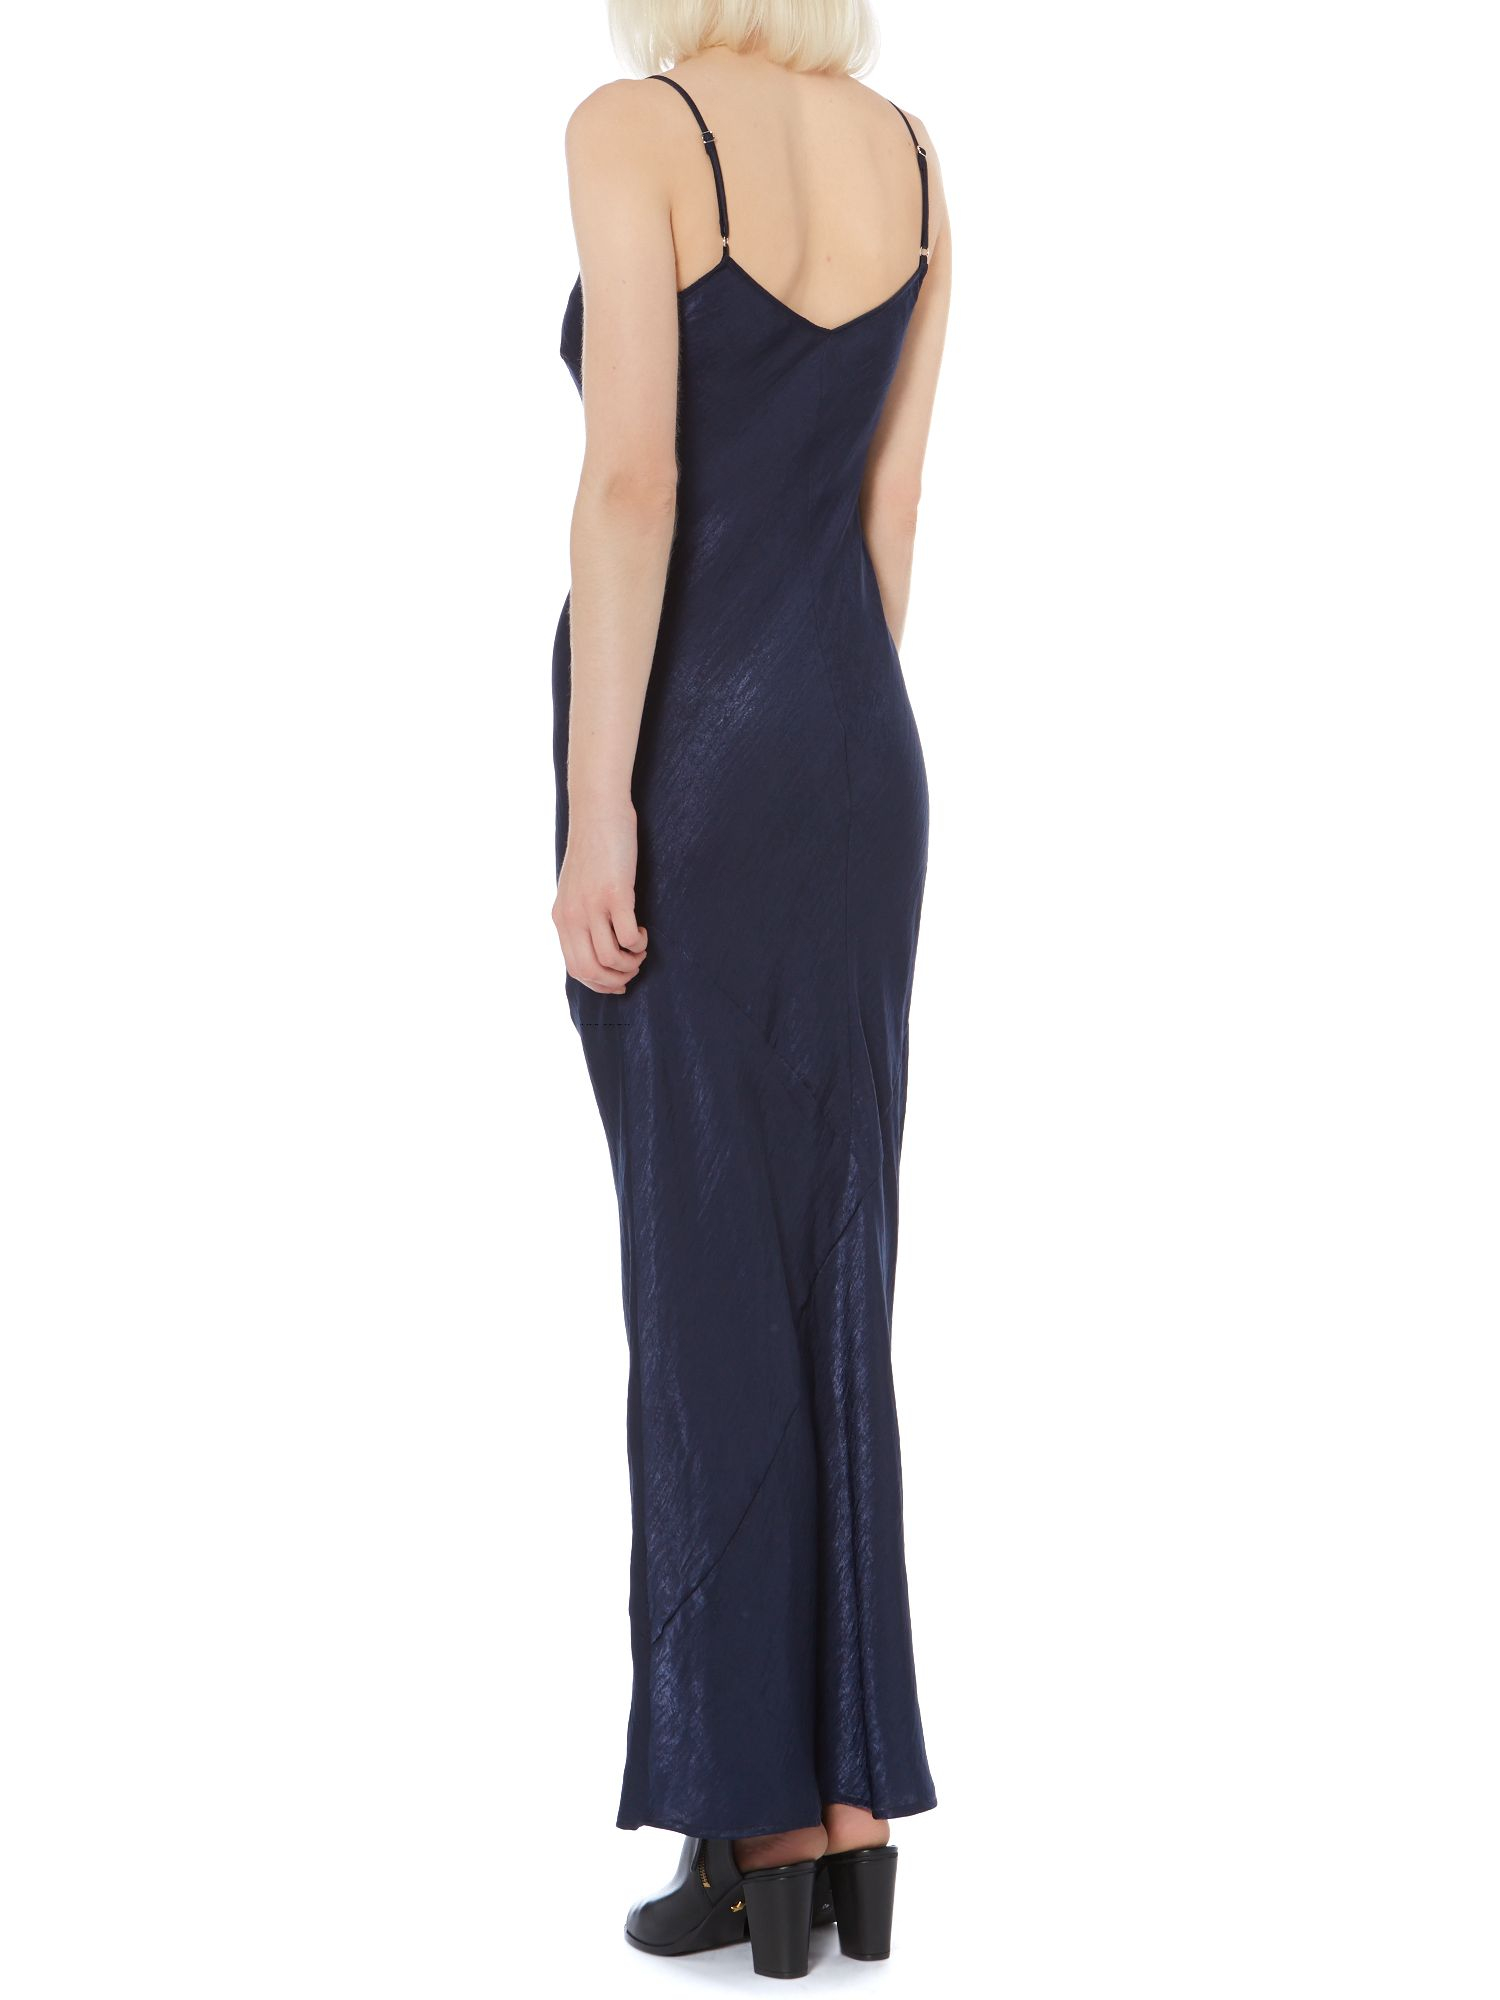 Label lab Hammered Satin Maxi Slip Dress in Blue  Lyst